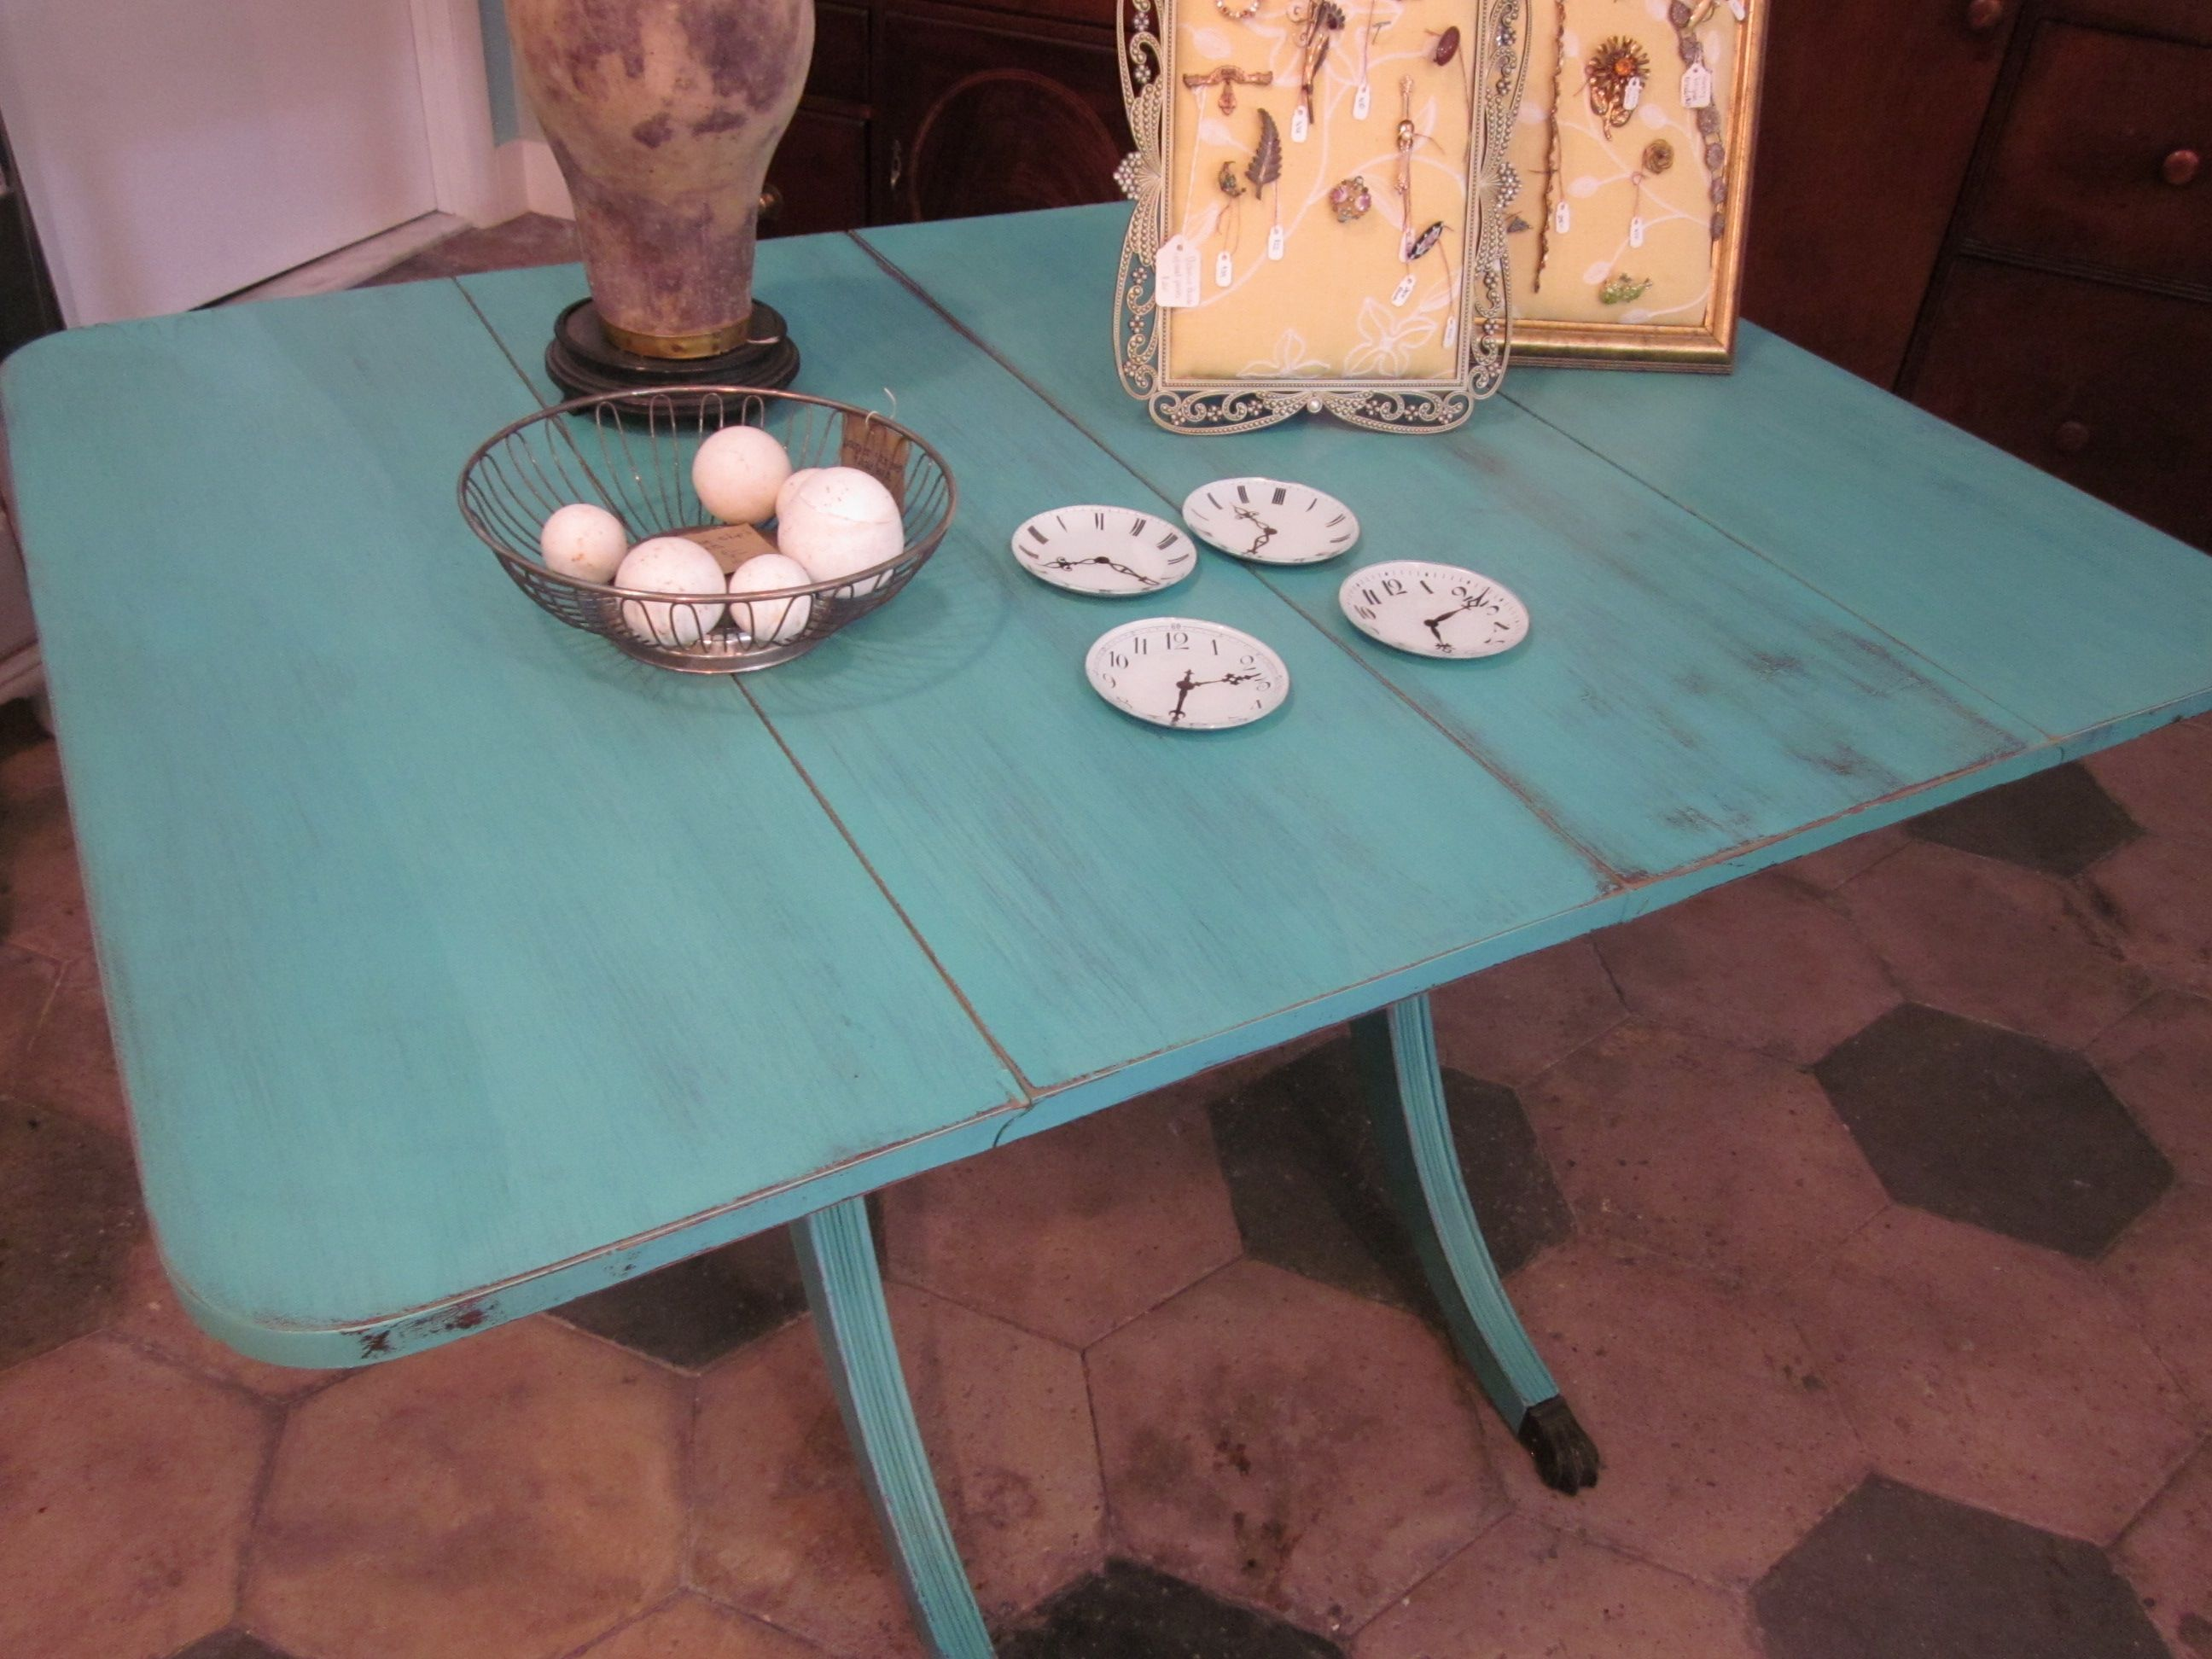 Painted Duncan Phyfe table IMG 6551